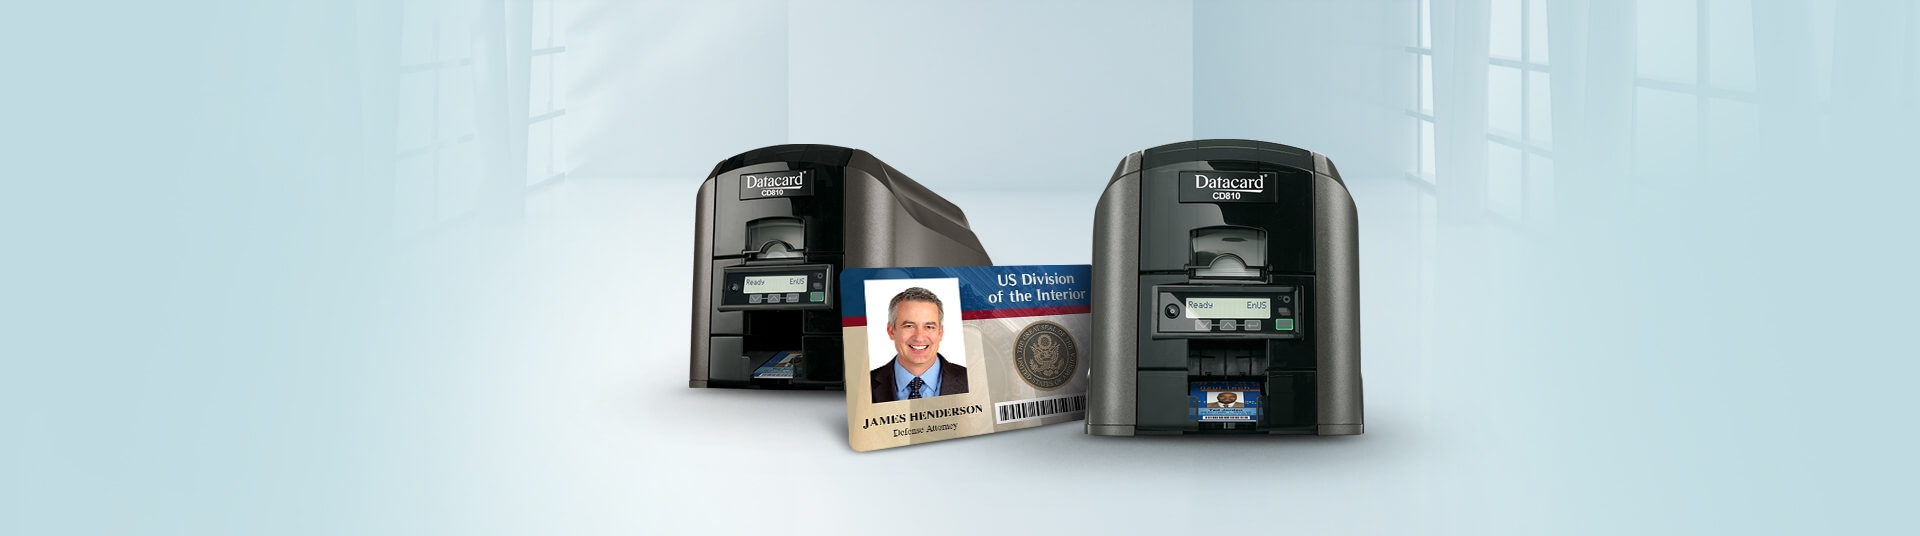 Entrust Datacard CD810 ID Card Printers